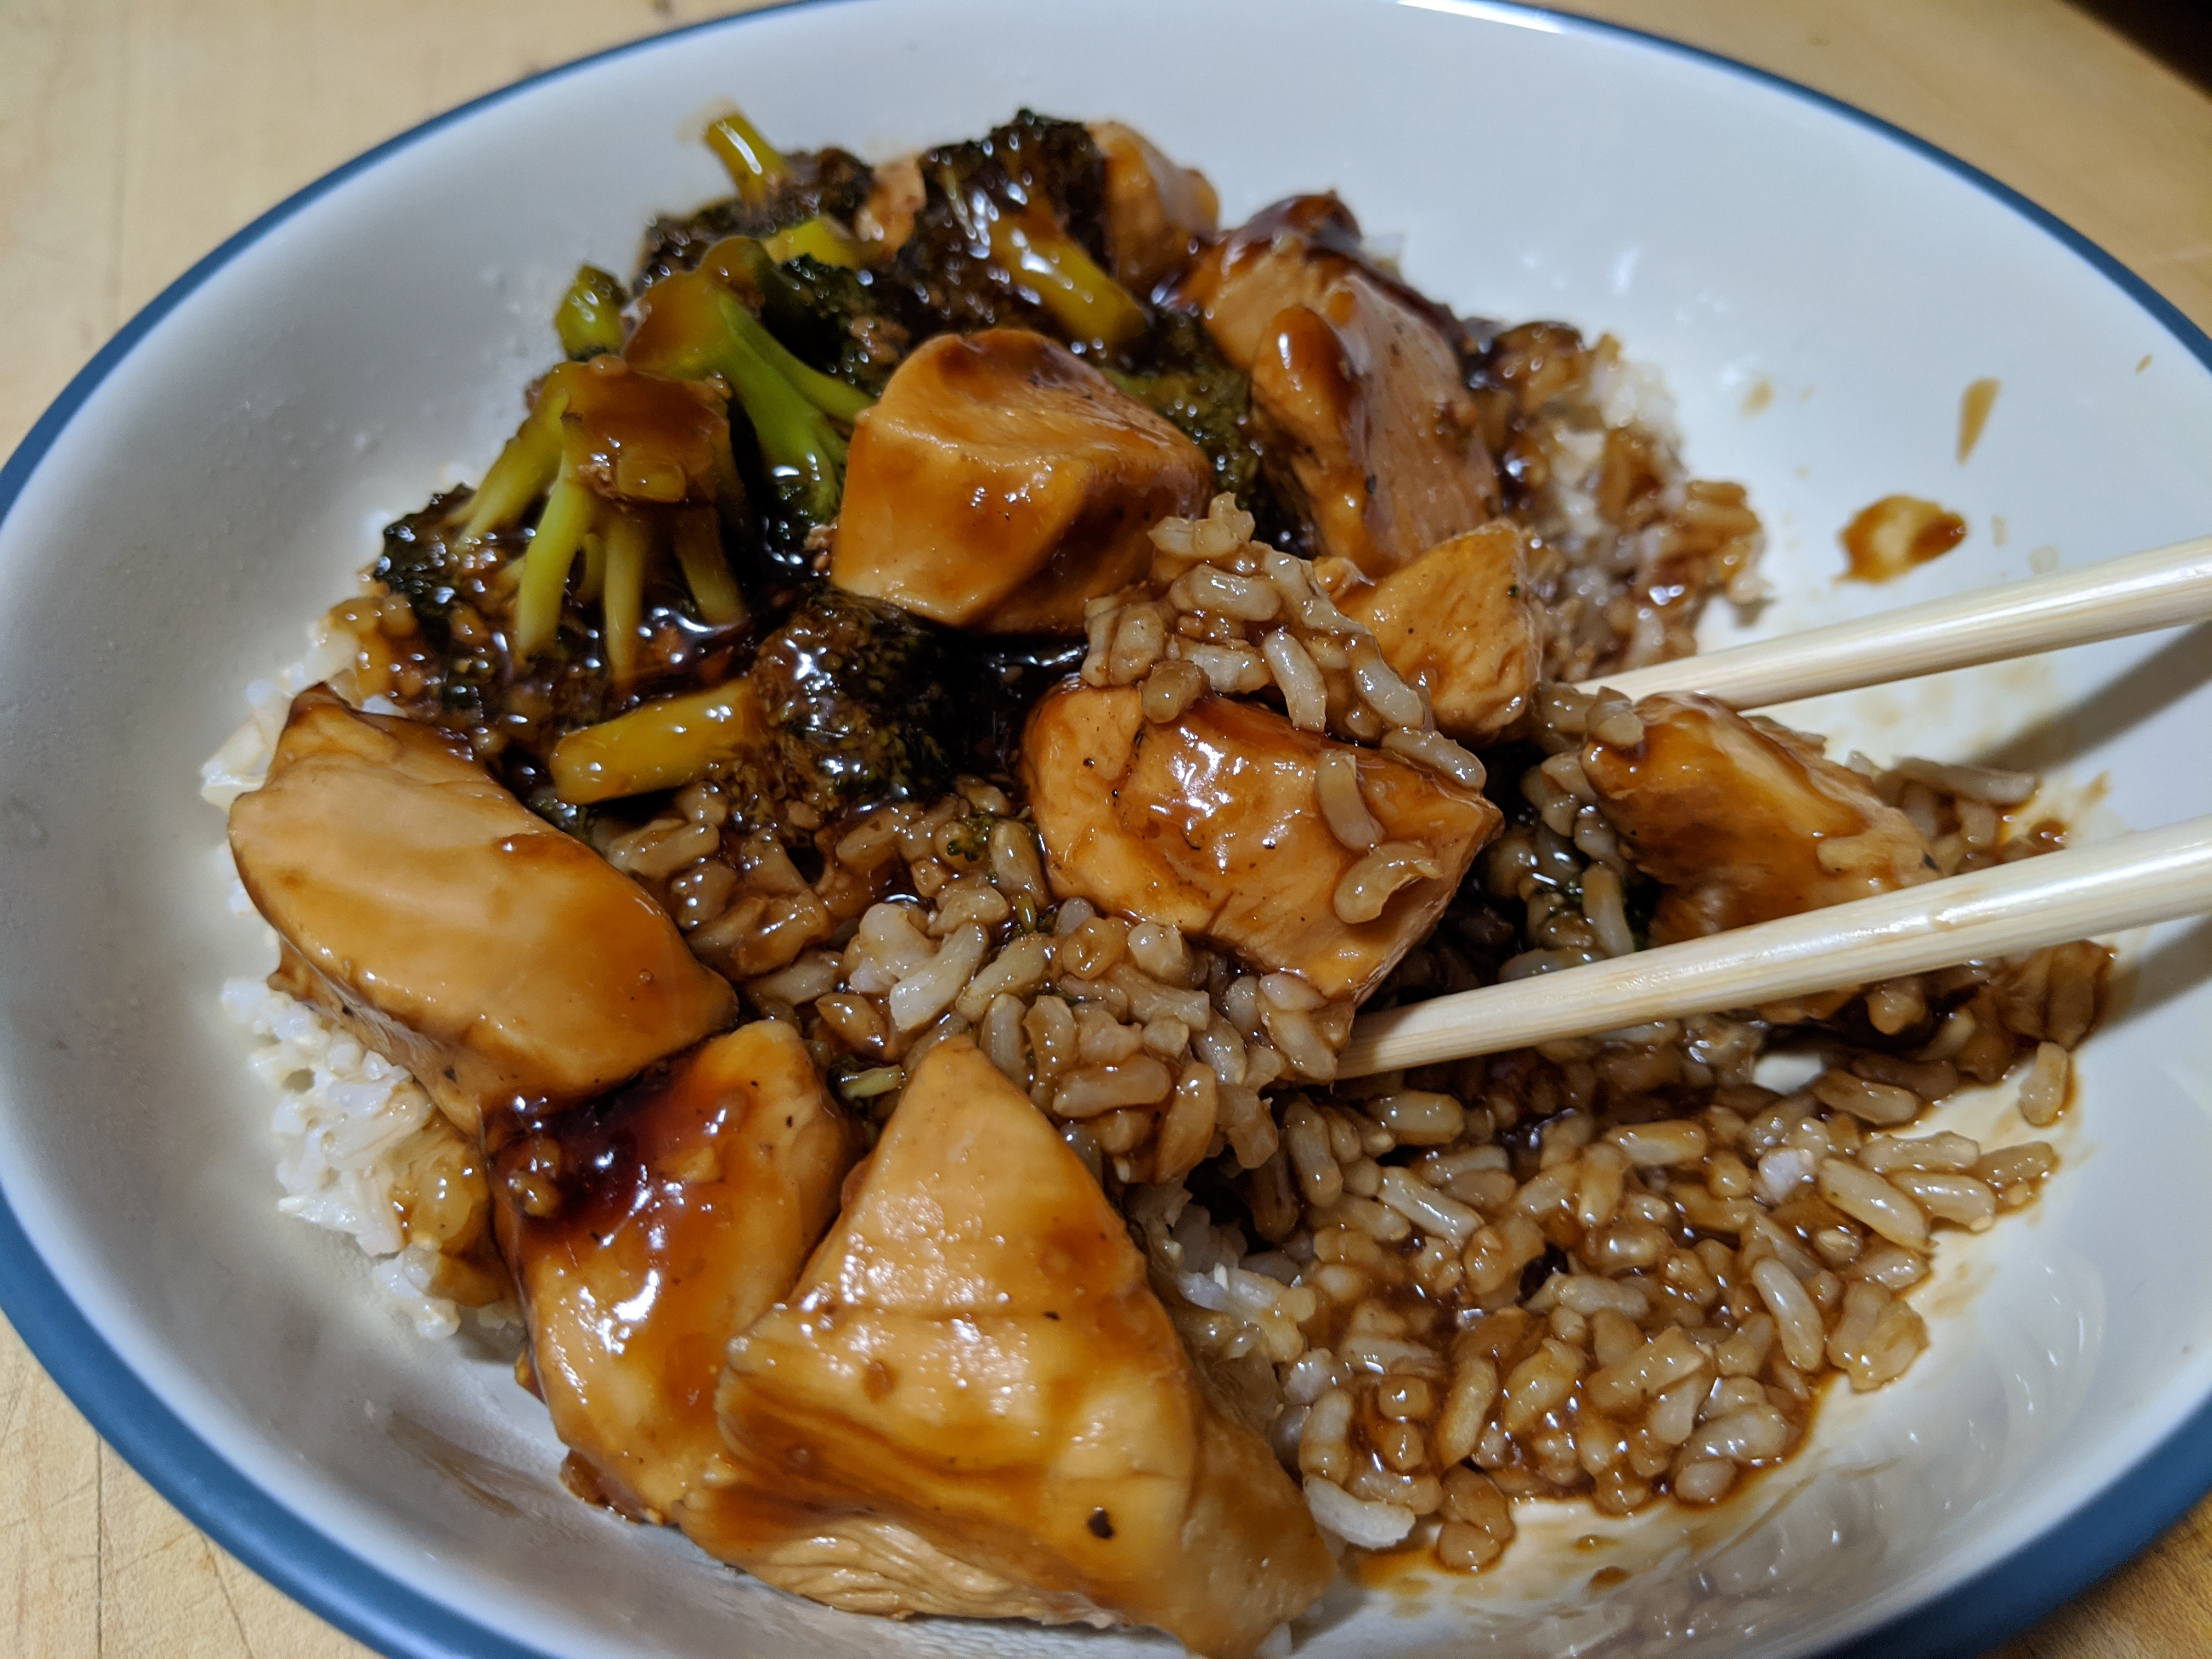 Image of Teriyaki Chicken and Broccoli